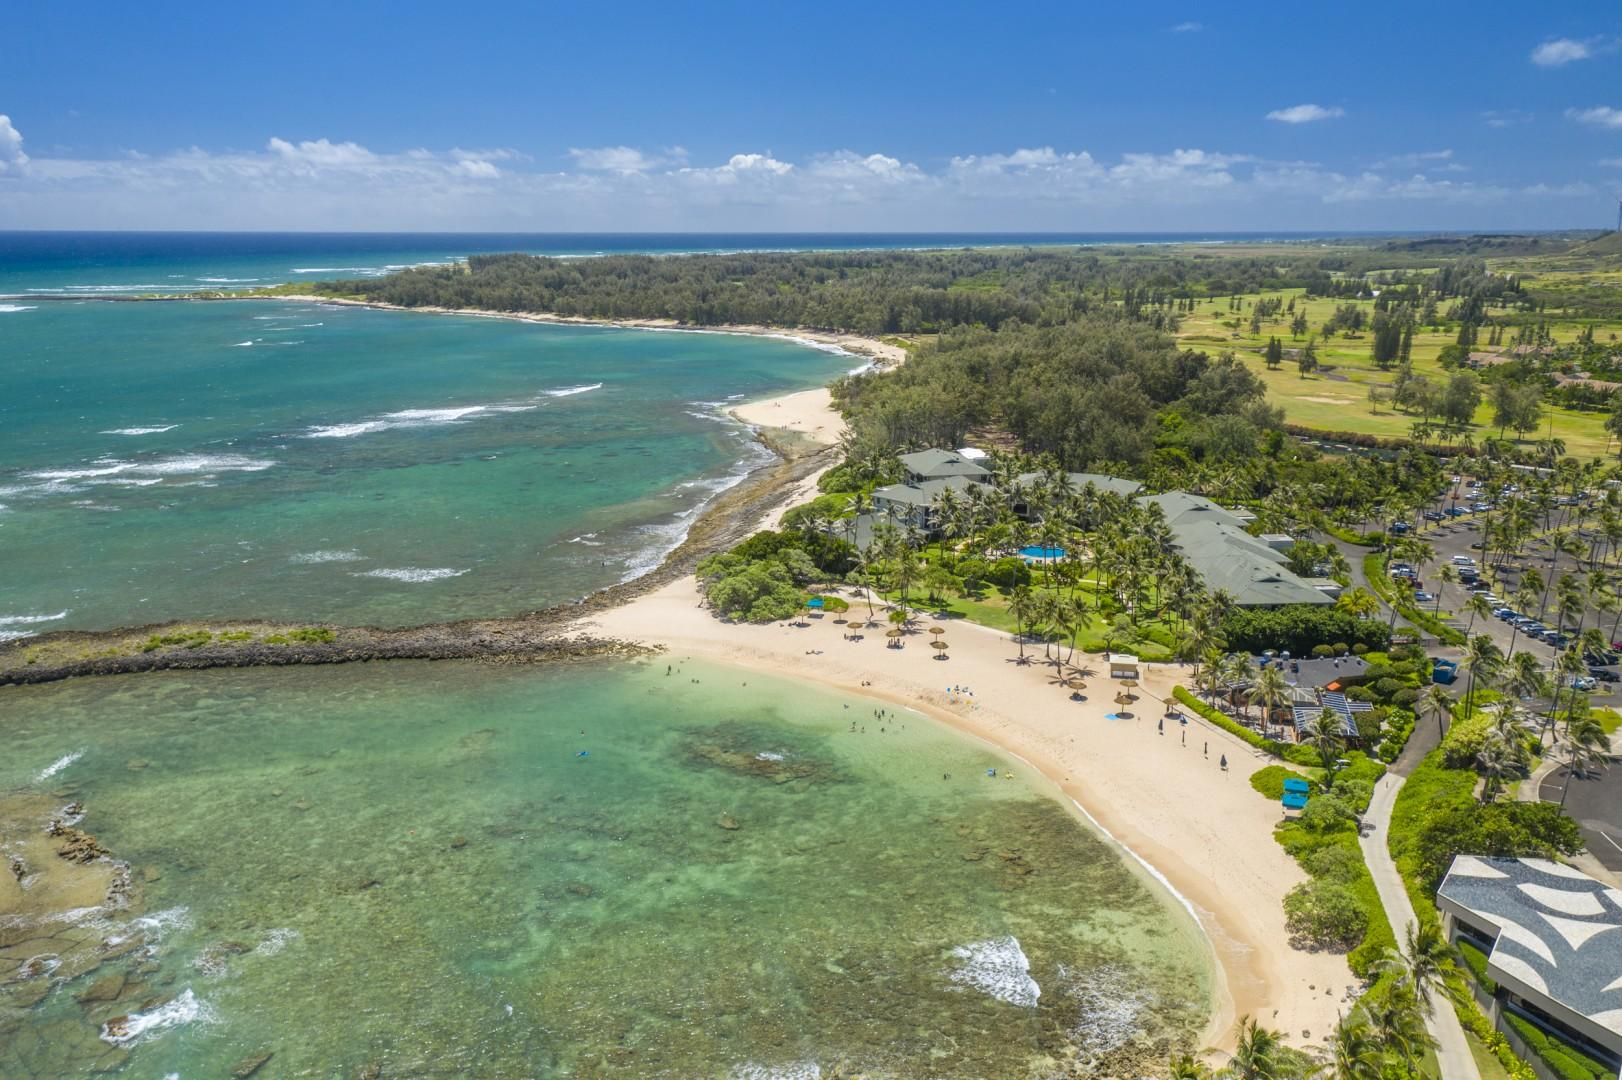 Aerial View of Kuilima Cove